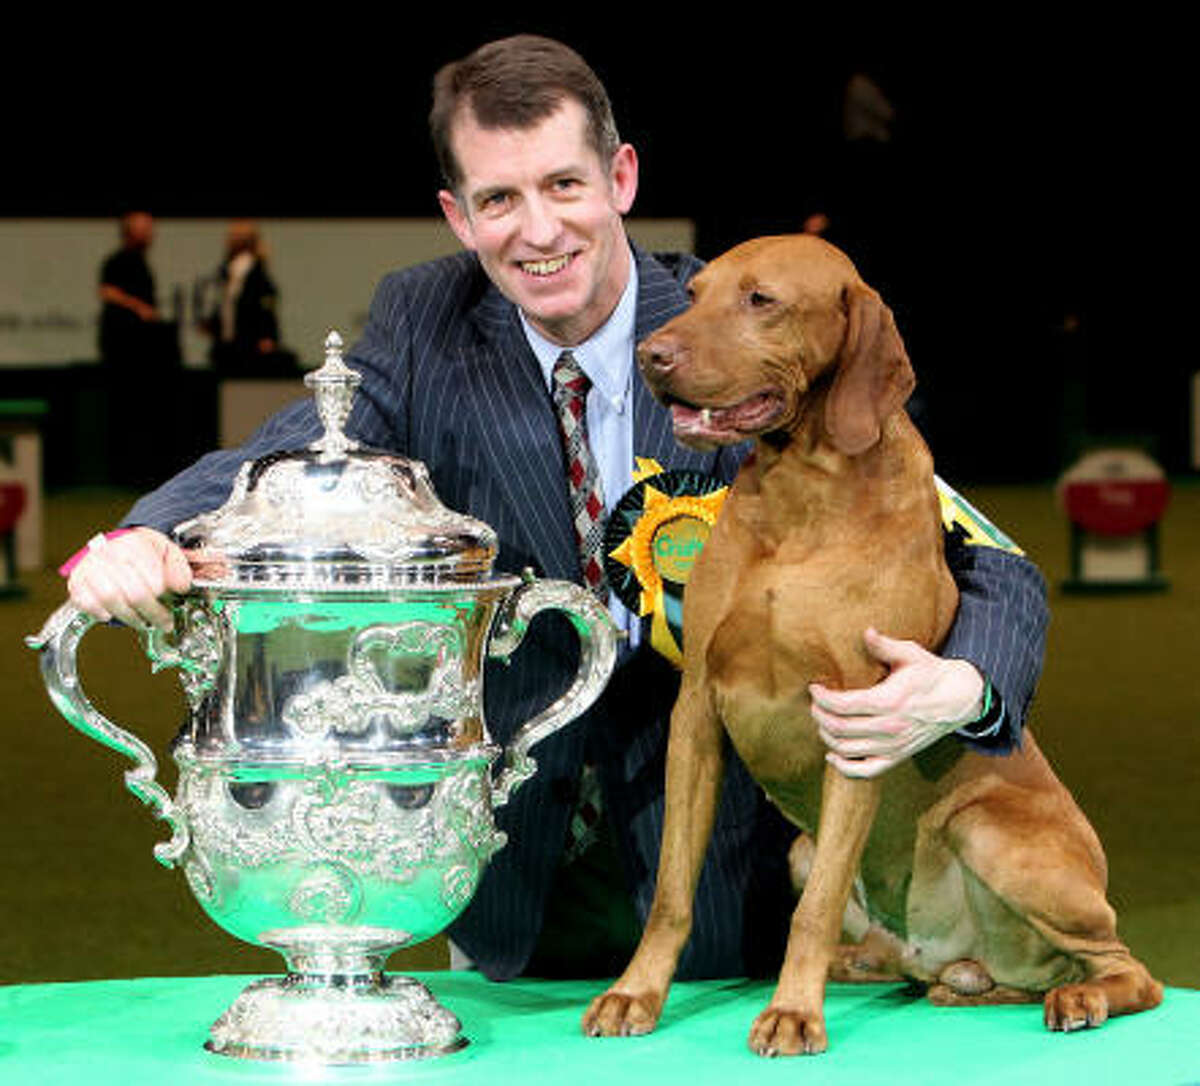 Yogi the Hungarian Vizsla and handler John Thirwell celebrate after winning 'Best in Show' at the 2010 Crufts dog show Sunday in Birmingham, England.